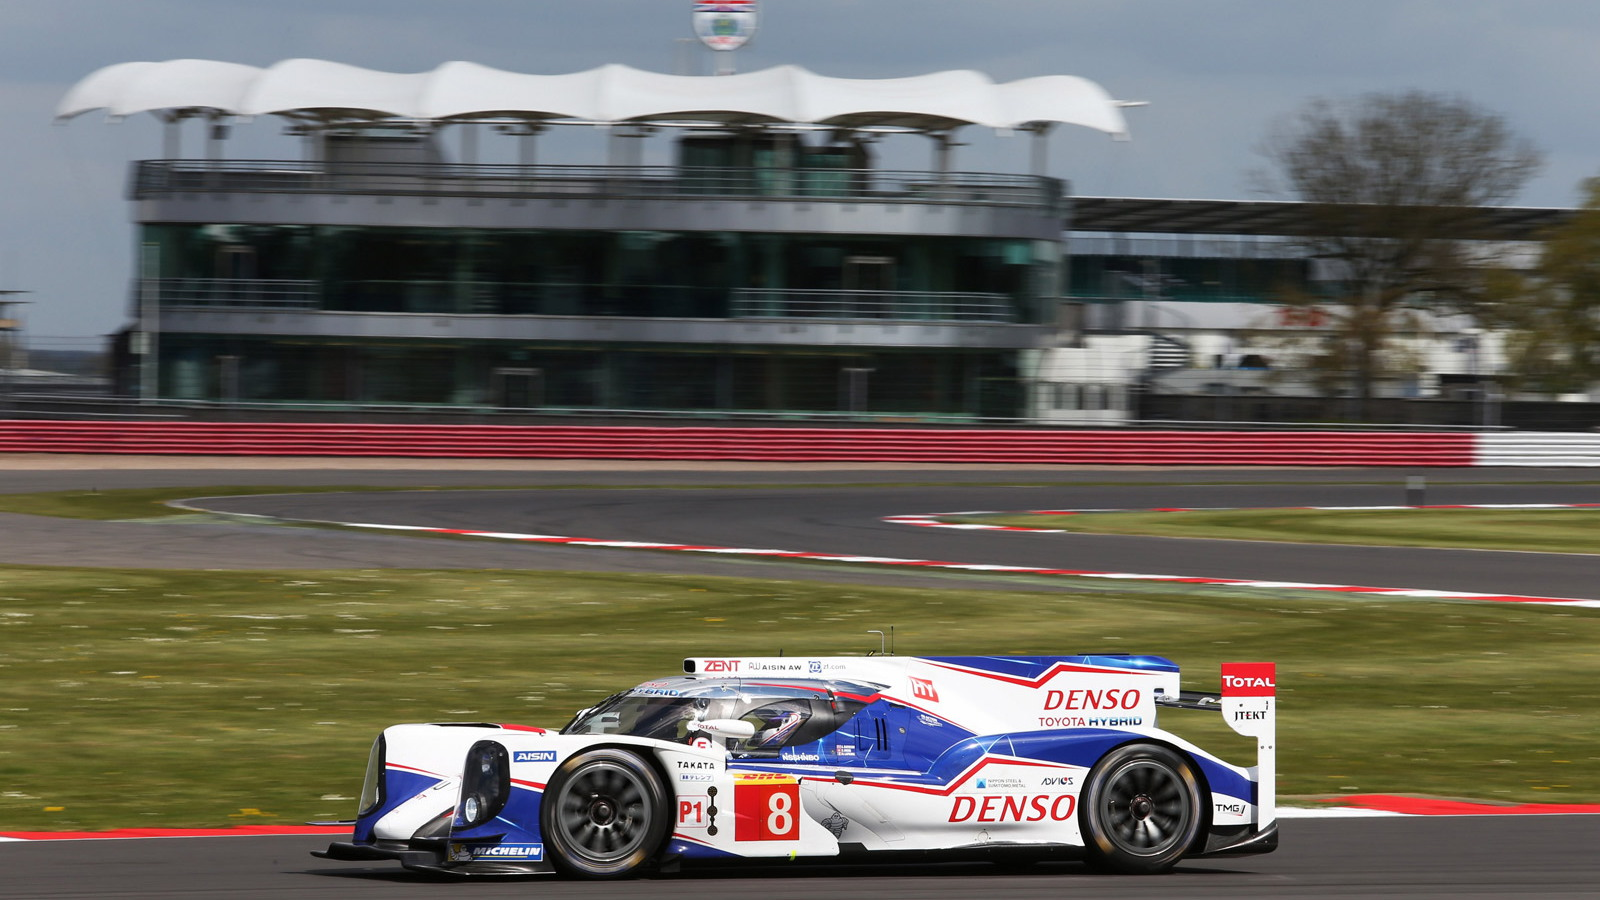 LMP1 cars in the 2014 6 Hours of Silverstone